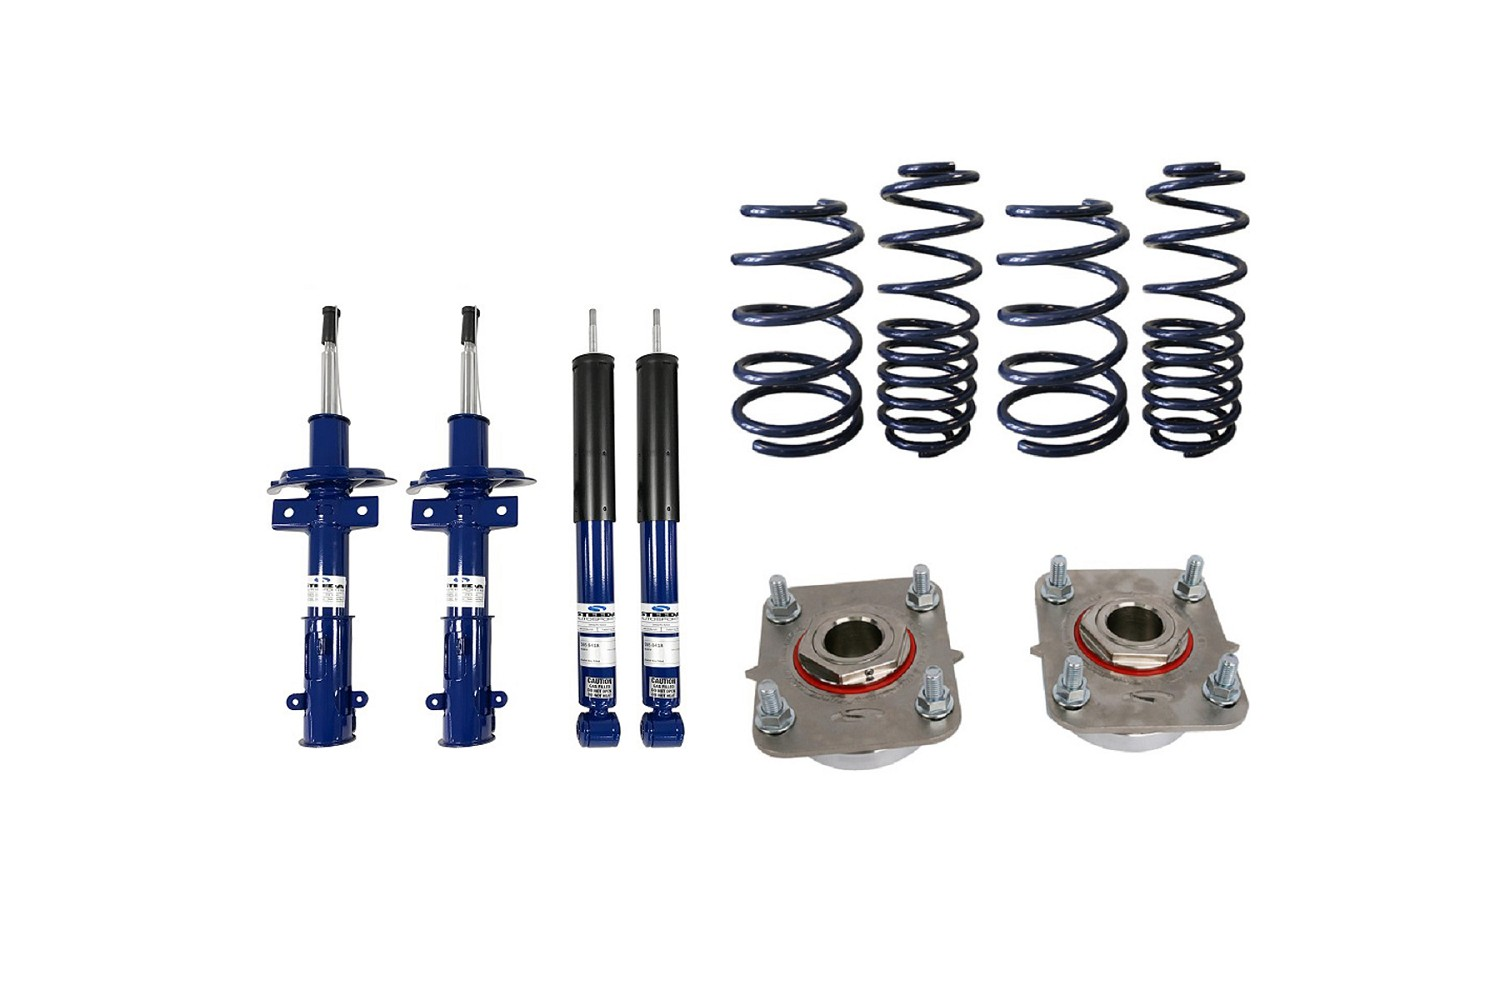 2011-2014 Mustang GT Steeda Pro-Action Ultra-Lite Lowering Spring/Shock/Strut Mount Package